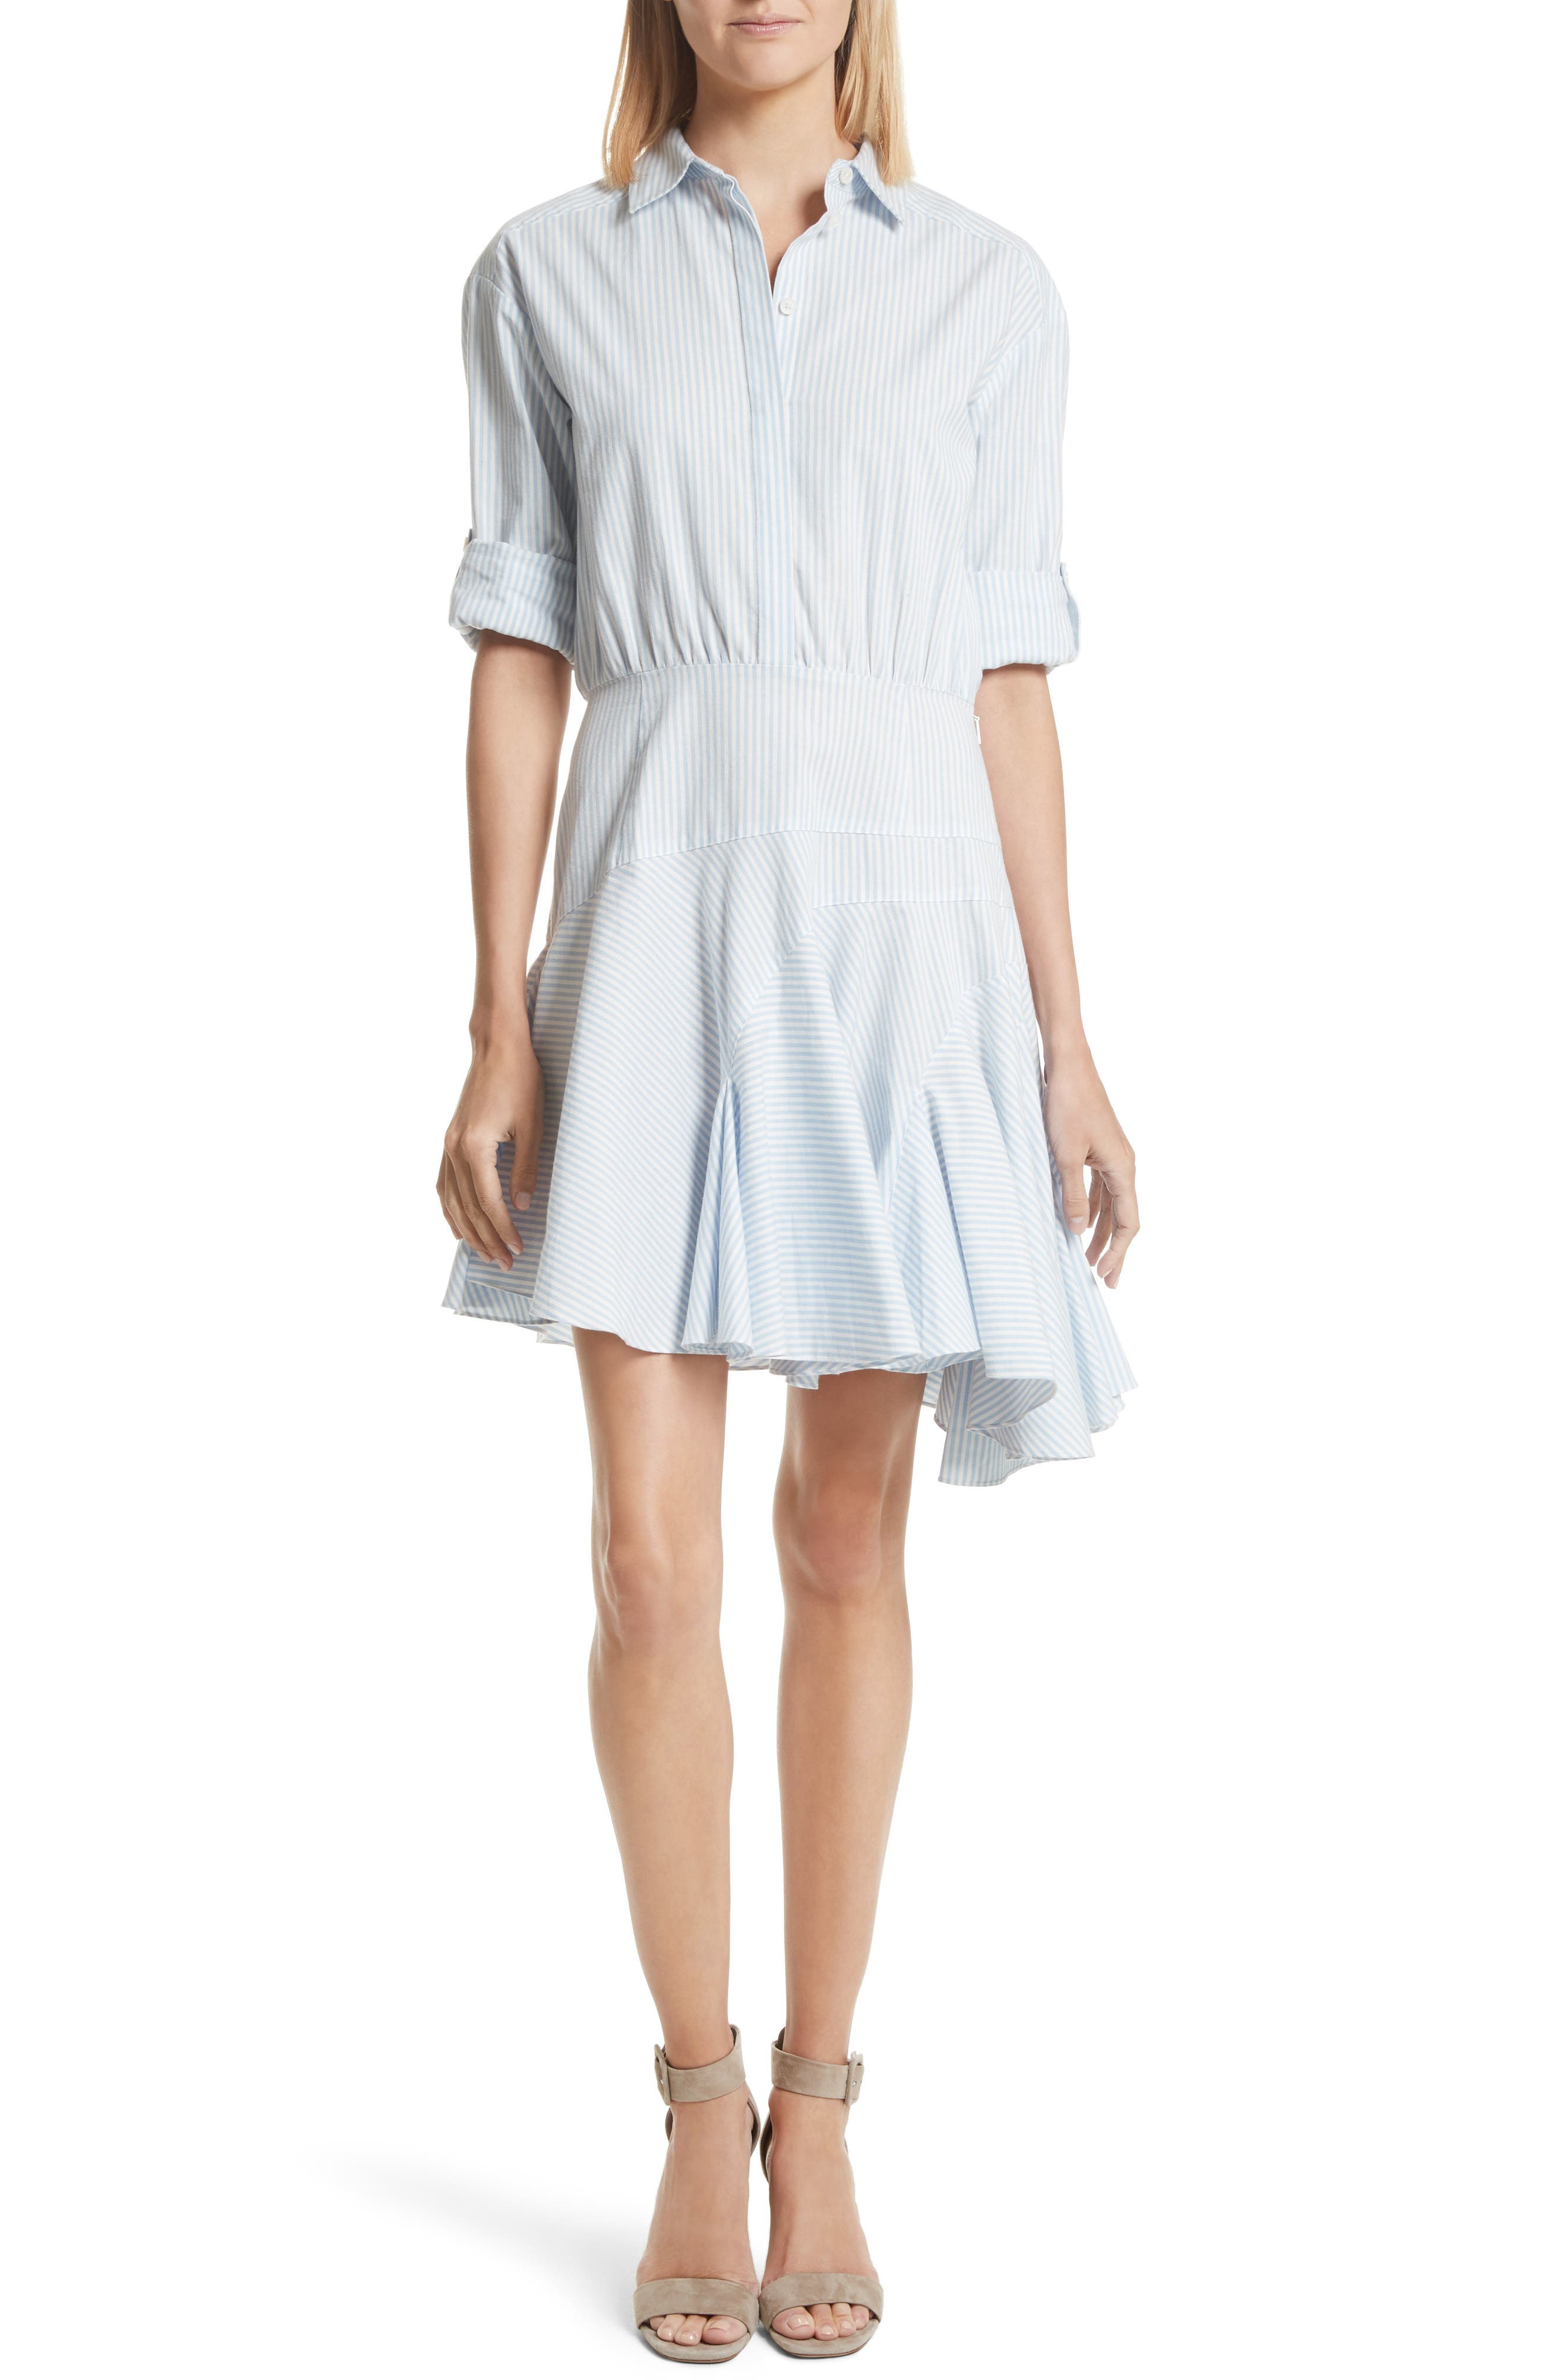 GREY Jason Wu Stripe Cotton Dress